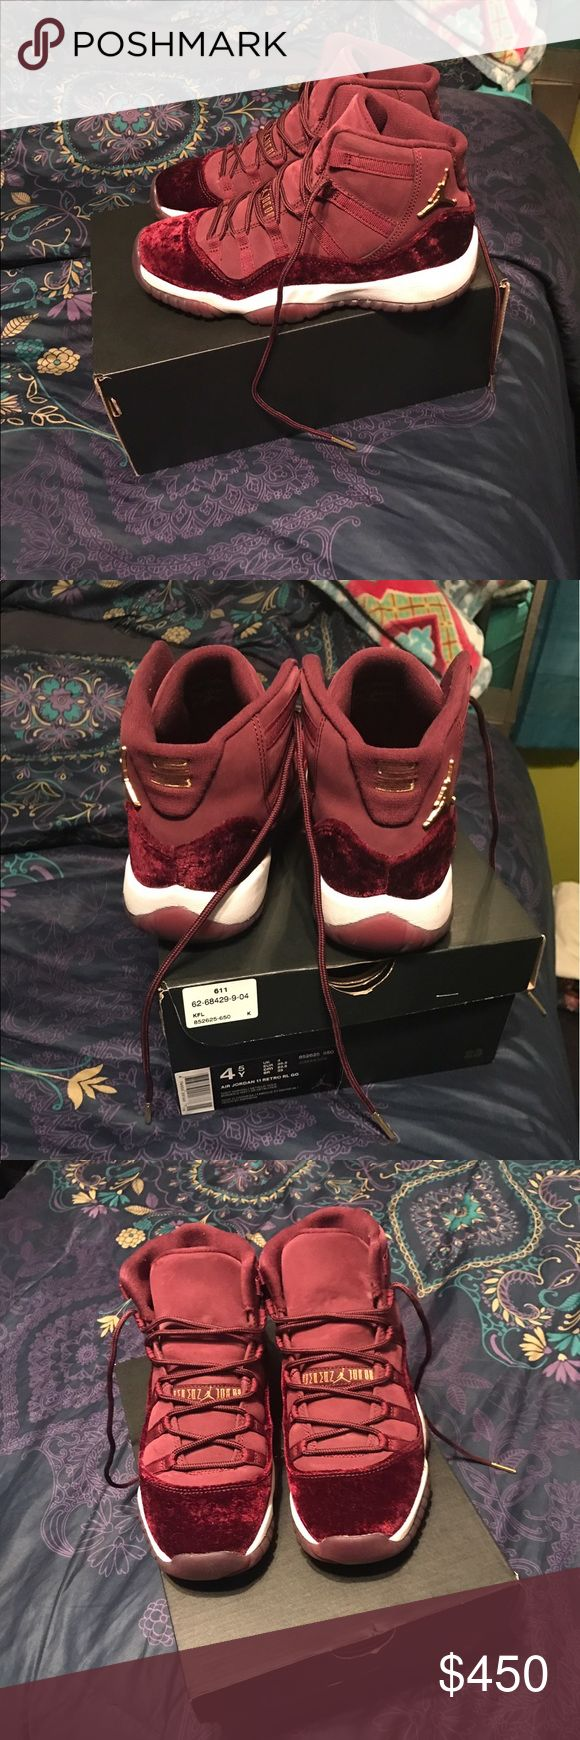 Air Jordan 11 Retro size. 4.5 Excellent Condition 100% Authentic Air Jordan 11 Retro RL GG size. 4.5 Big Kids. Worn twice still in New excellent condition. Retail Price for Jordan's $220. Comes with shoe box and receipt. Hard 2 Find.... These Are Exclusive & So Cute!!! Air Jordan Shoes Sneakers